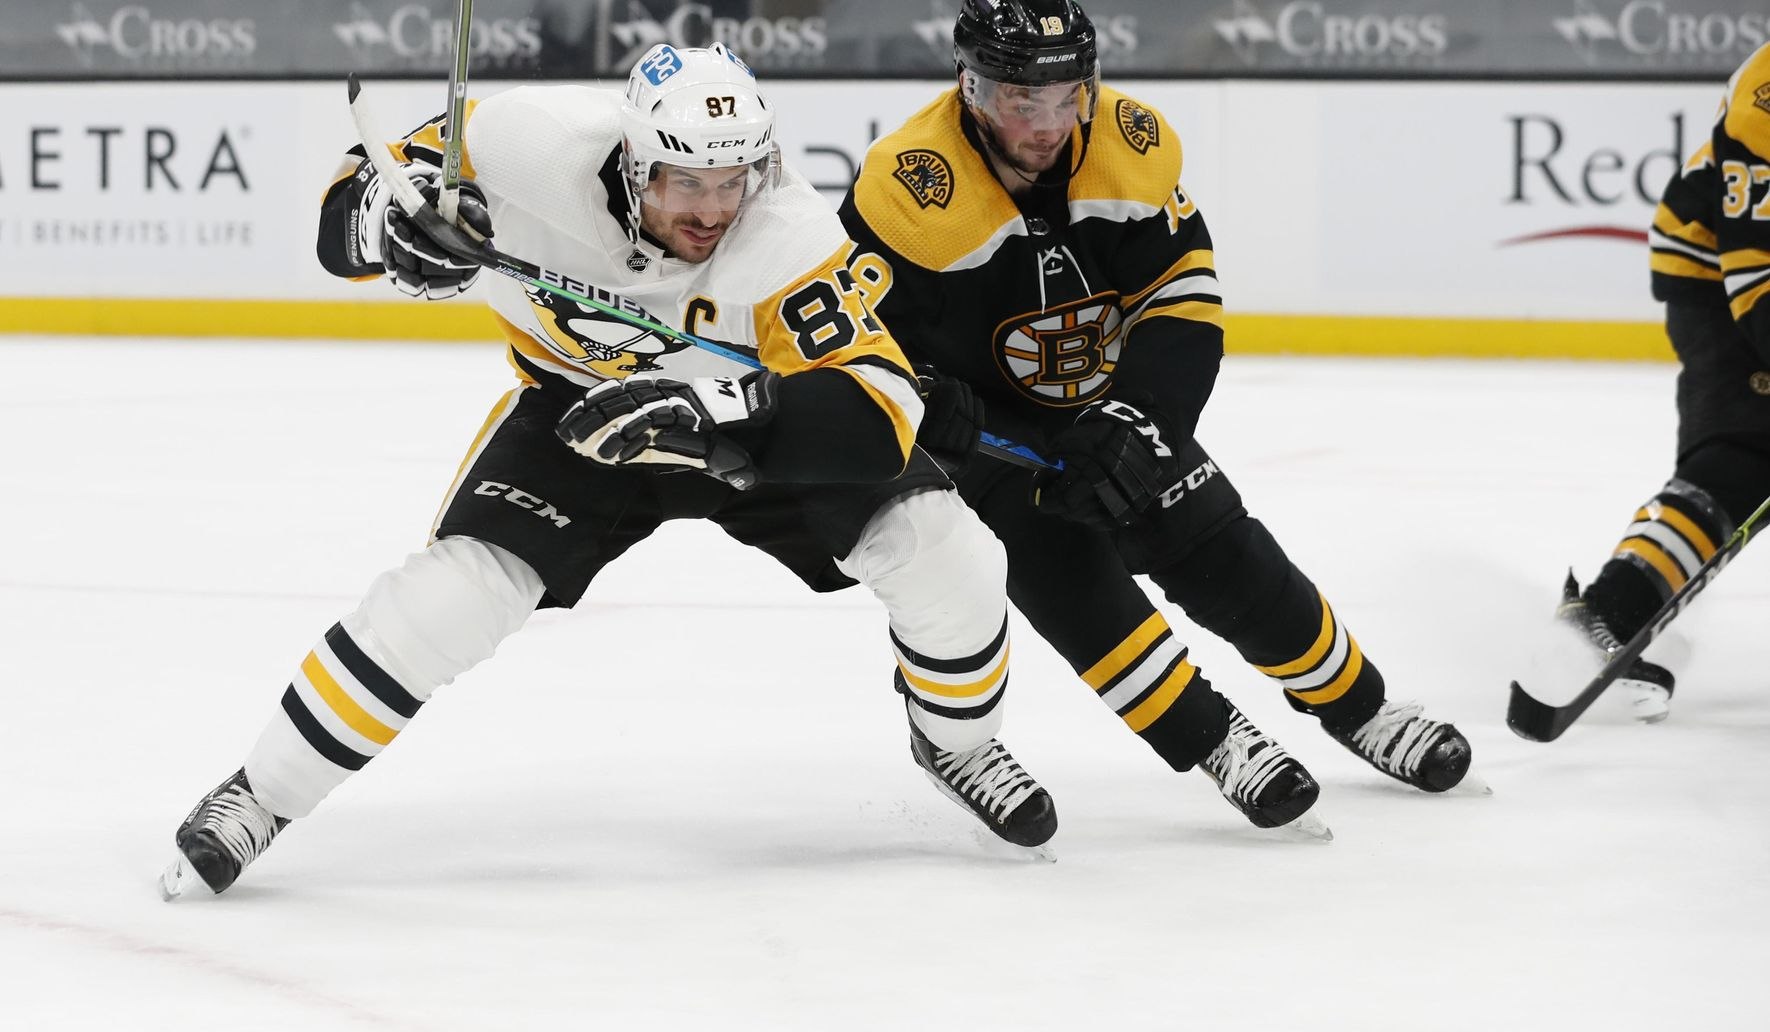 Penguins beat Bruins 4-1 for 1st win in Boston since 2014